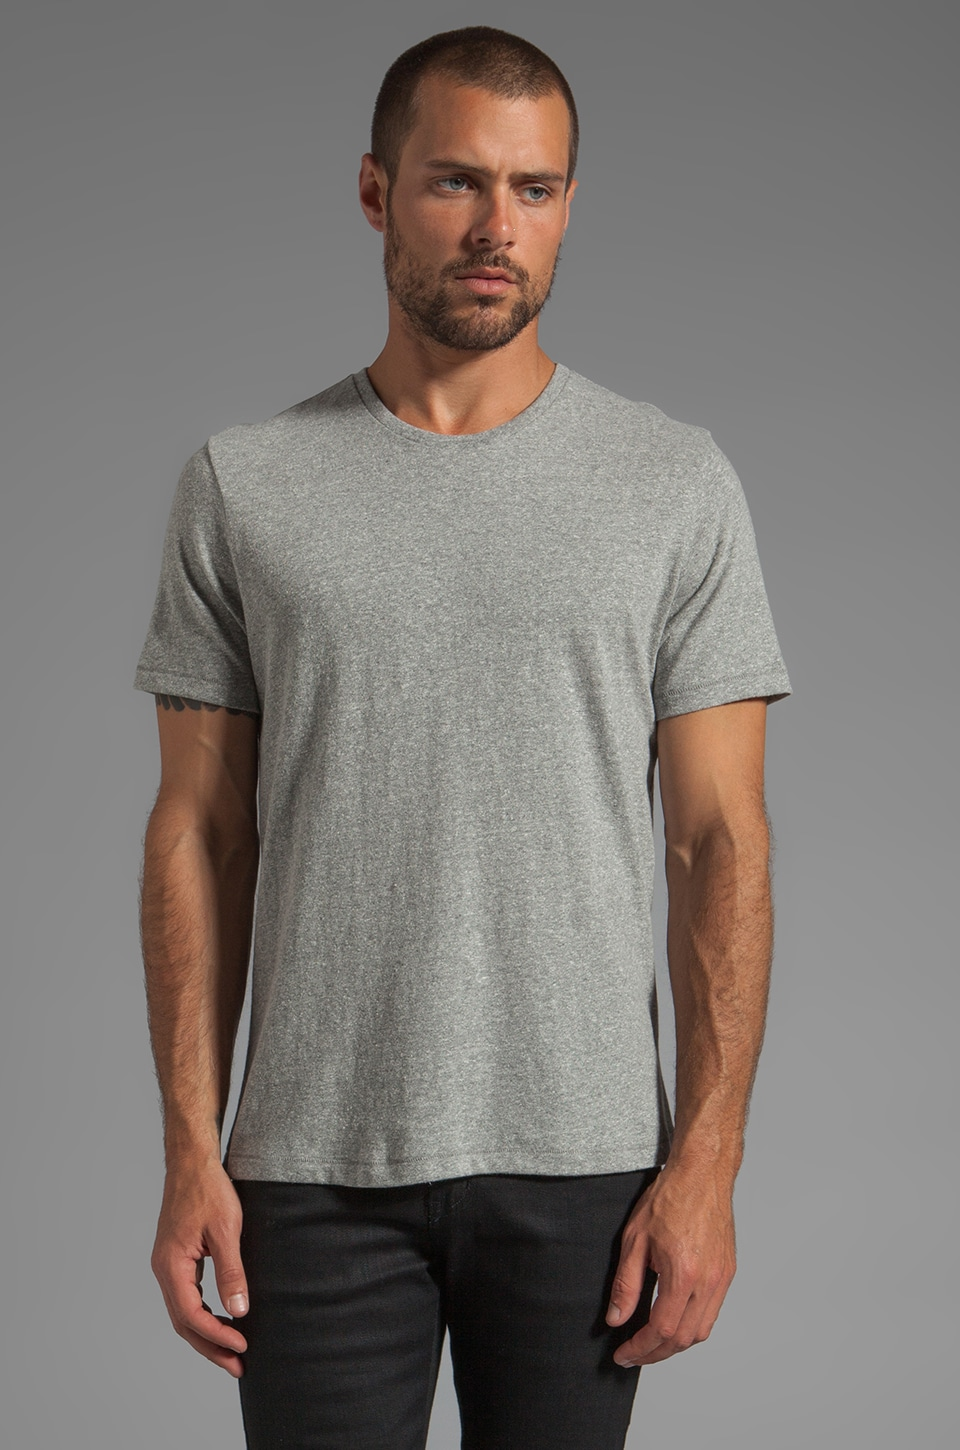 Jack Spade Kinsley Crewneck T-Shirt in Cement Grey